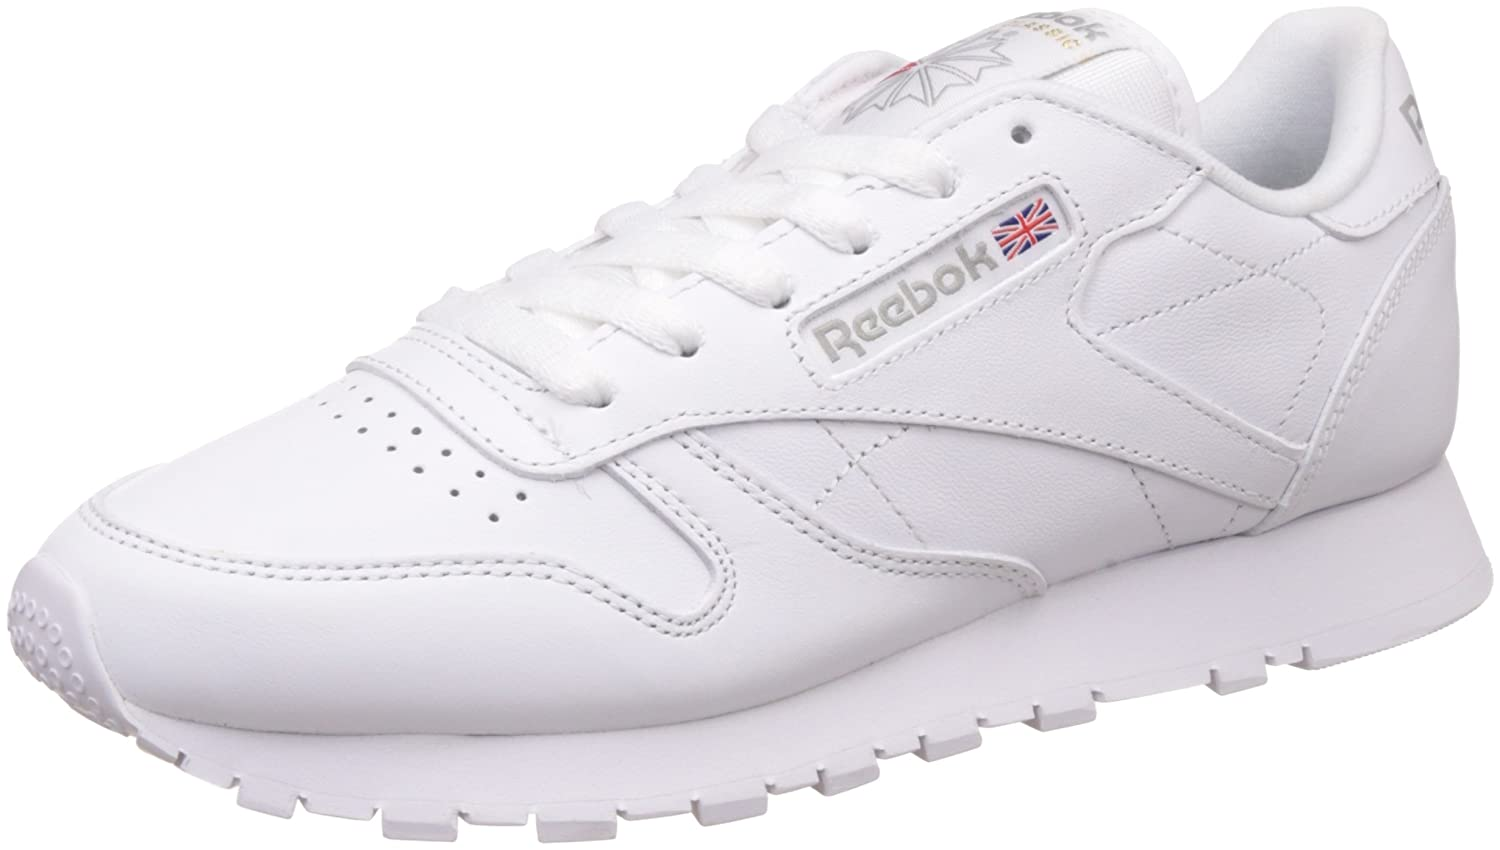 88157bd4f71d Reebok Classic Leather Women s Trail Running Shoes  Amazon.co.uk  Shoes    Bags